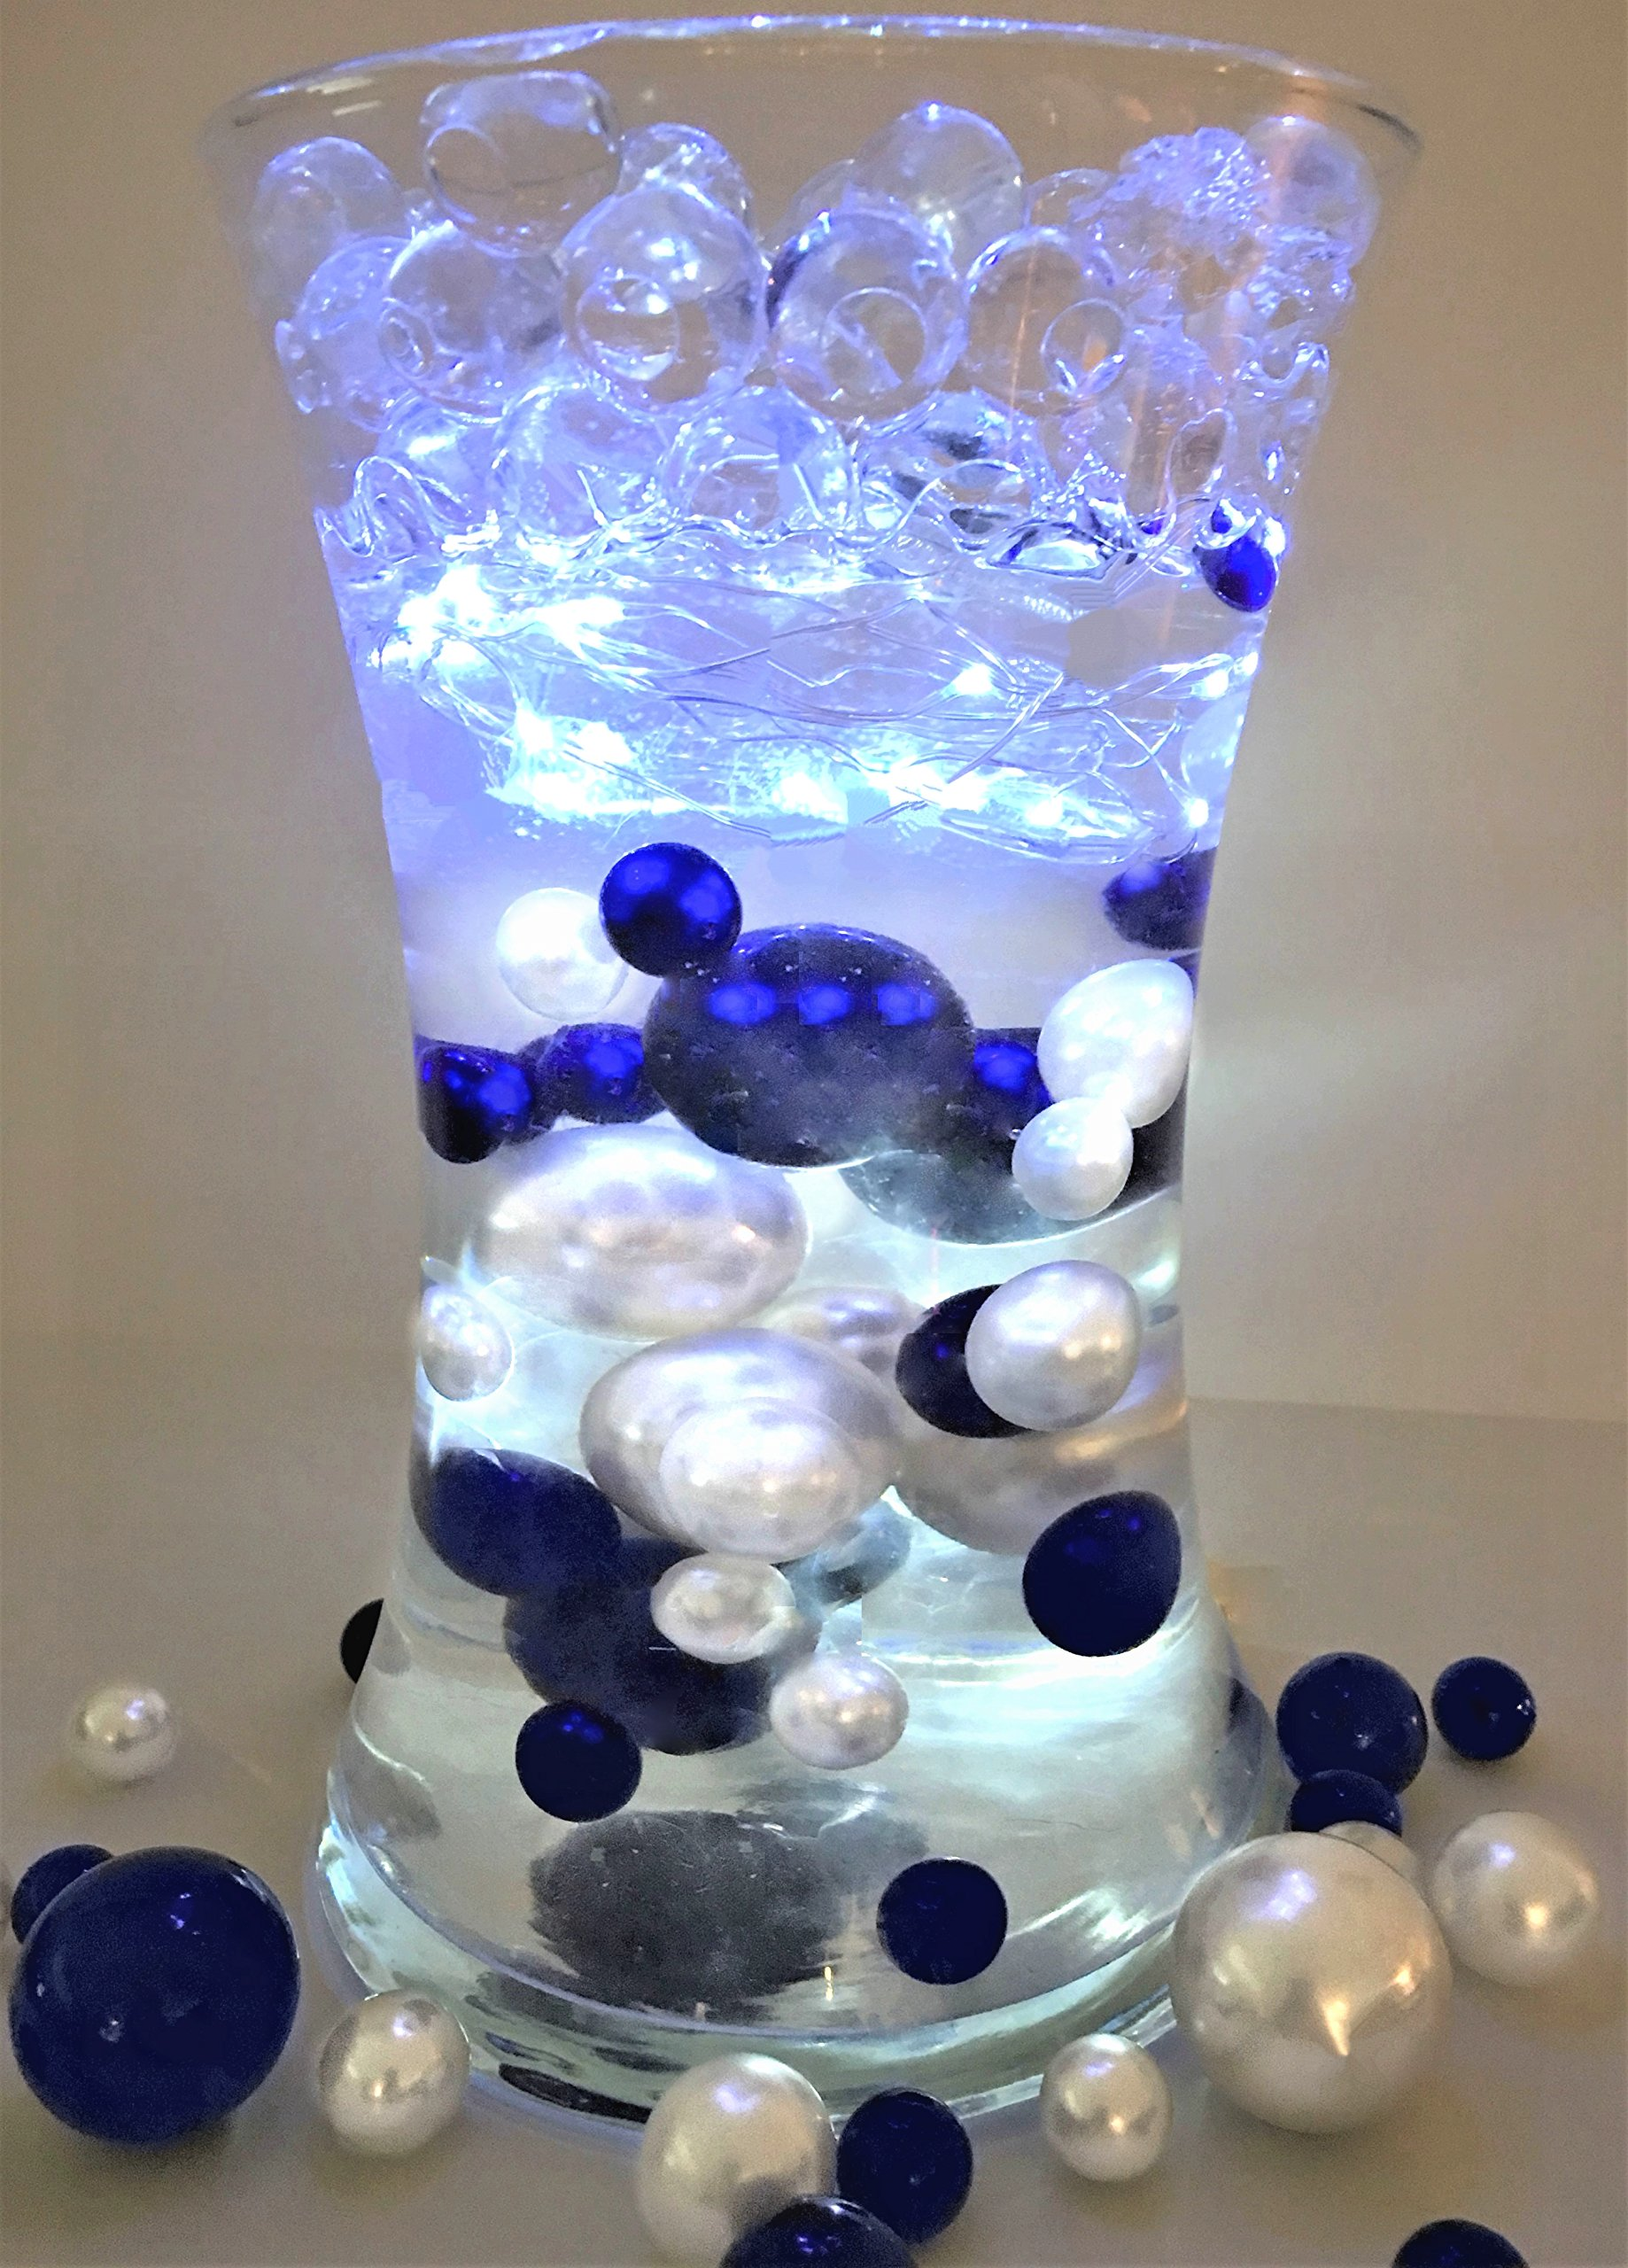 80 Royal Blue & White Pearls - Jumbo and Assorted Sizes Vase Fillers for Decorating Centerpieces - To Float the Pearls - Order with Transparent Water Gels by Vase Pearlfection